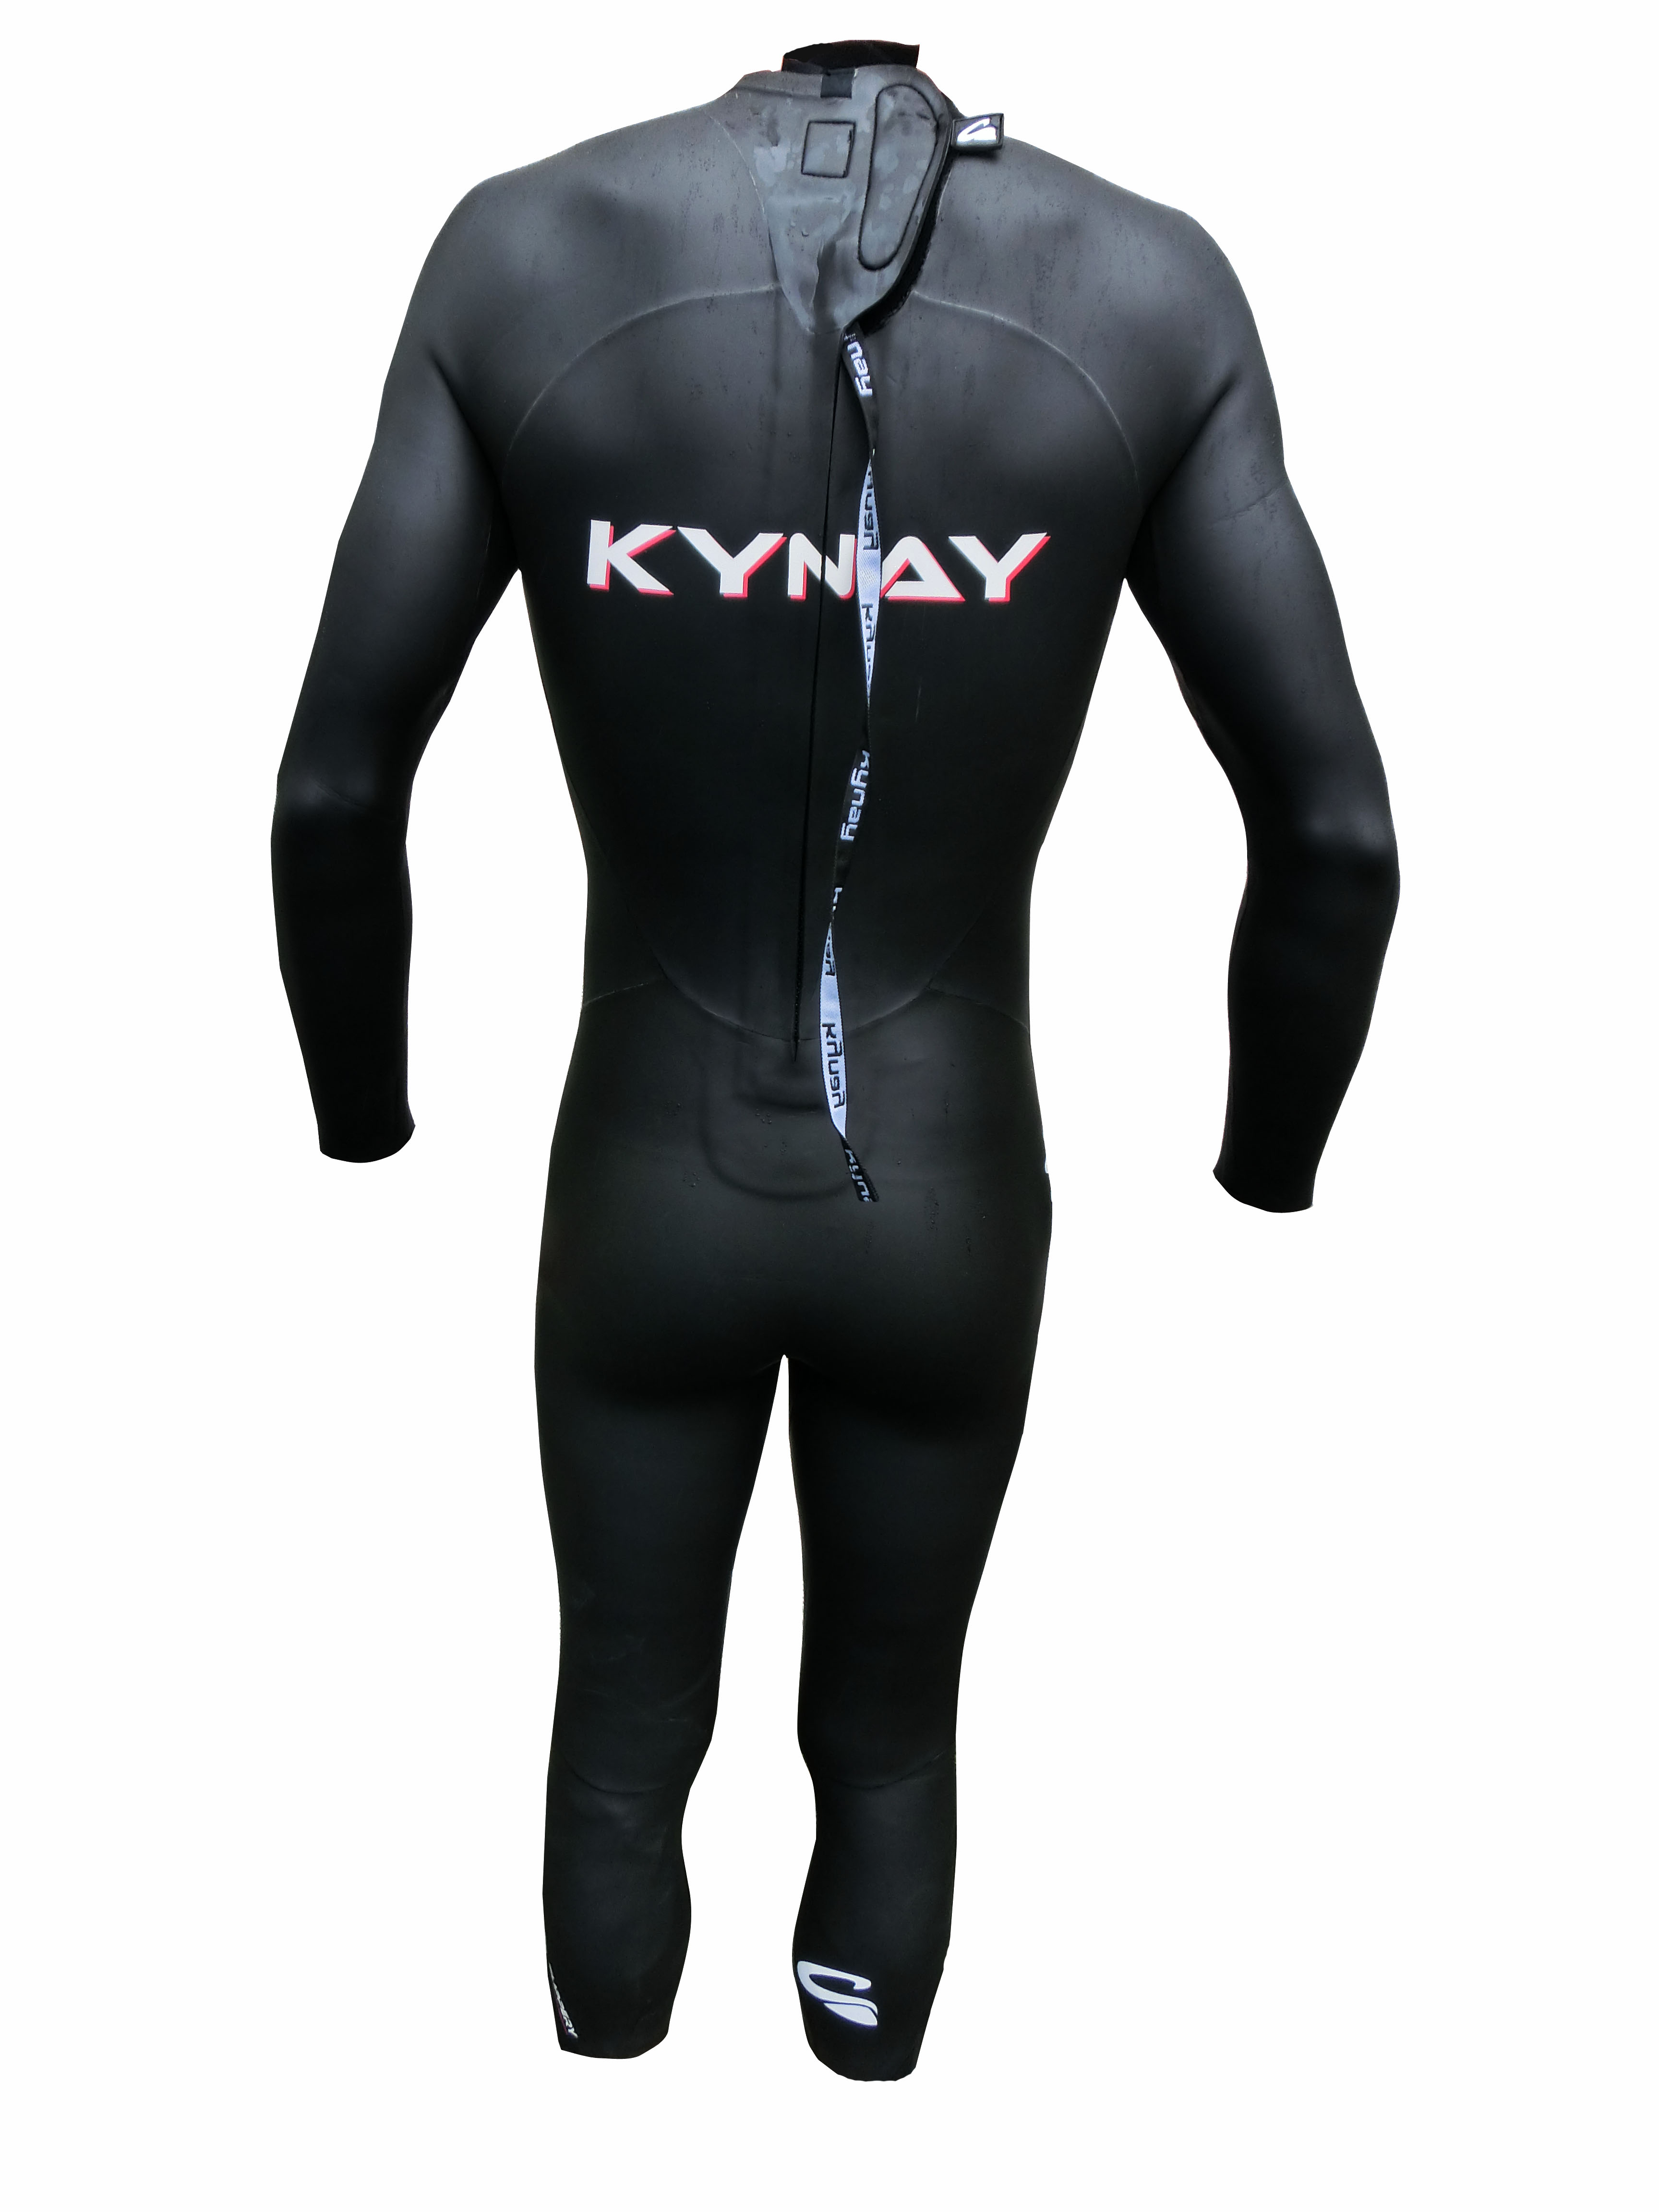 NEOPRENO TRIATLON KYNAY KYTI-ONE